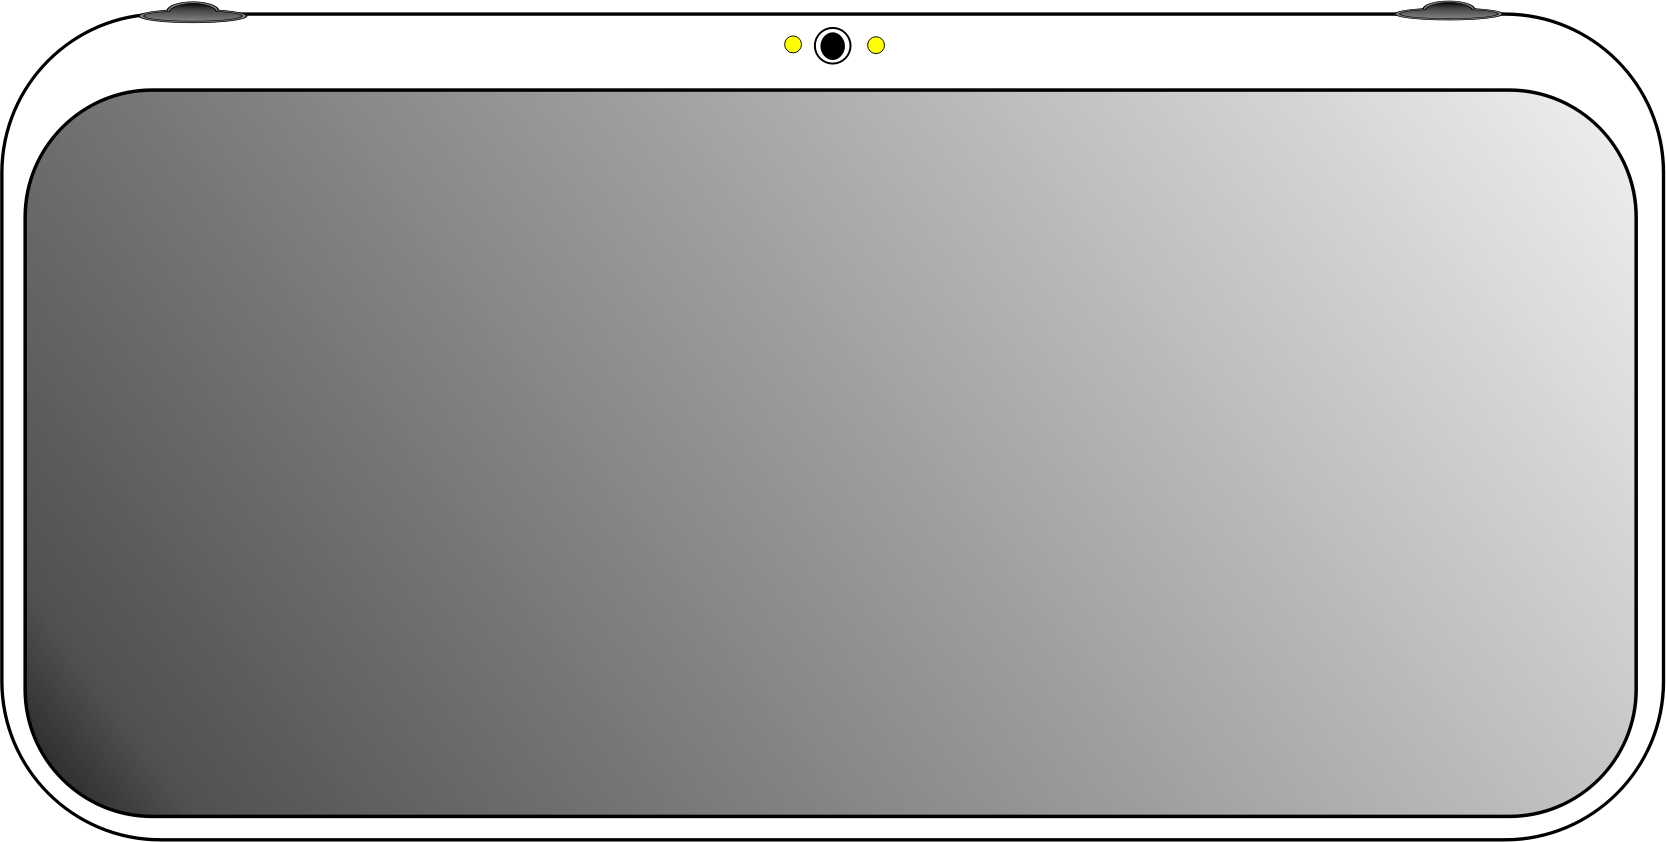 Simple Tablet by Andrew_R_Thomas